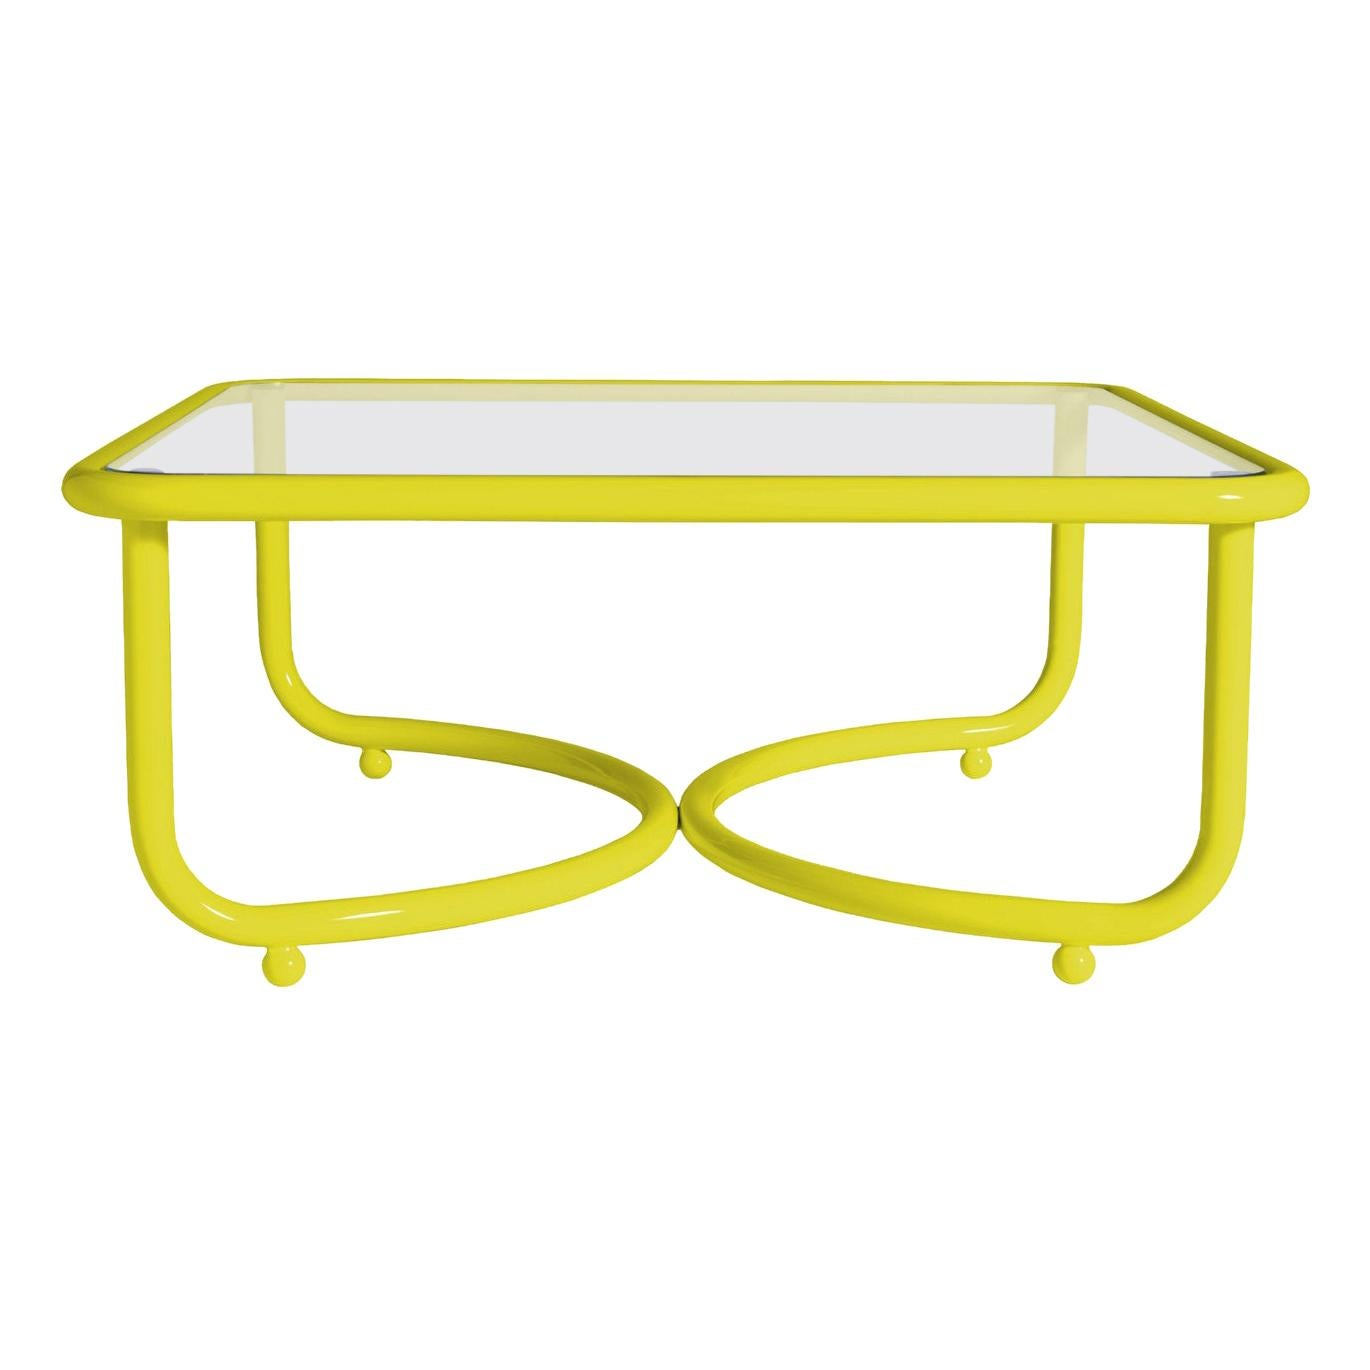 Locus Solus Low Yellow Table by Gae Aulenti